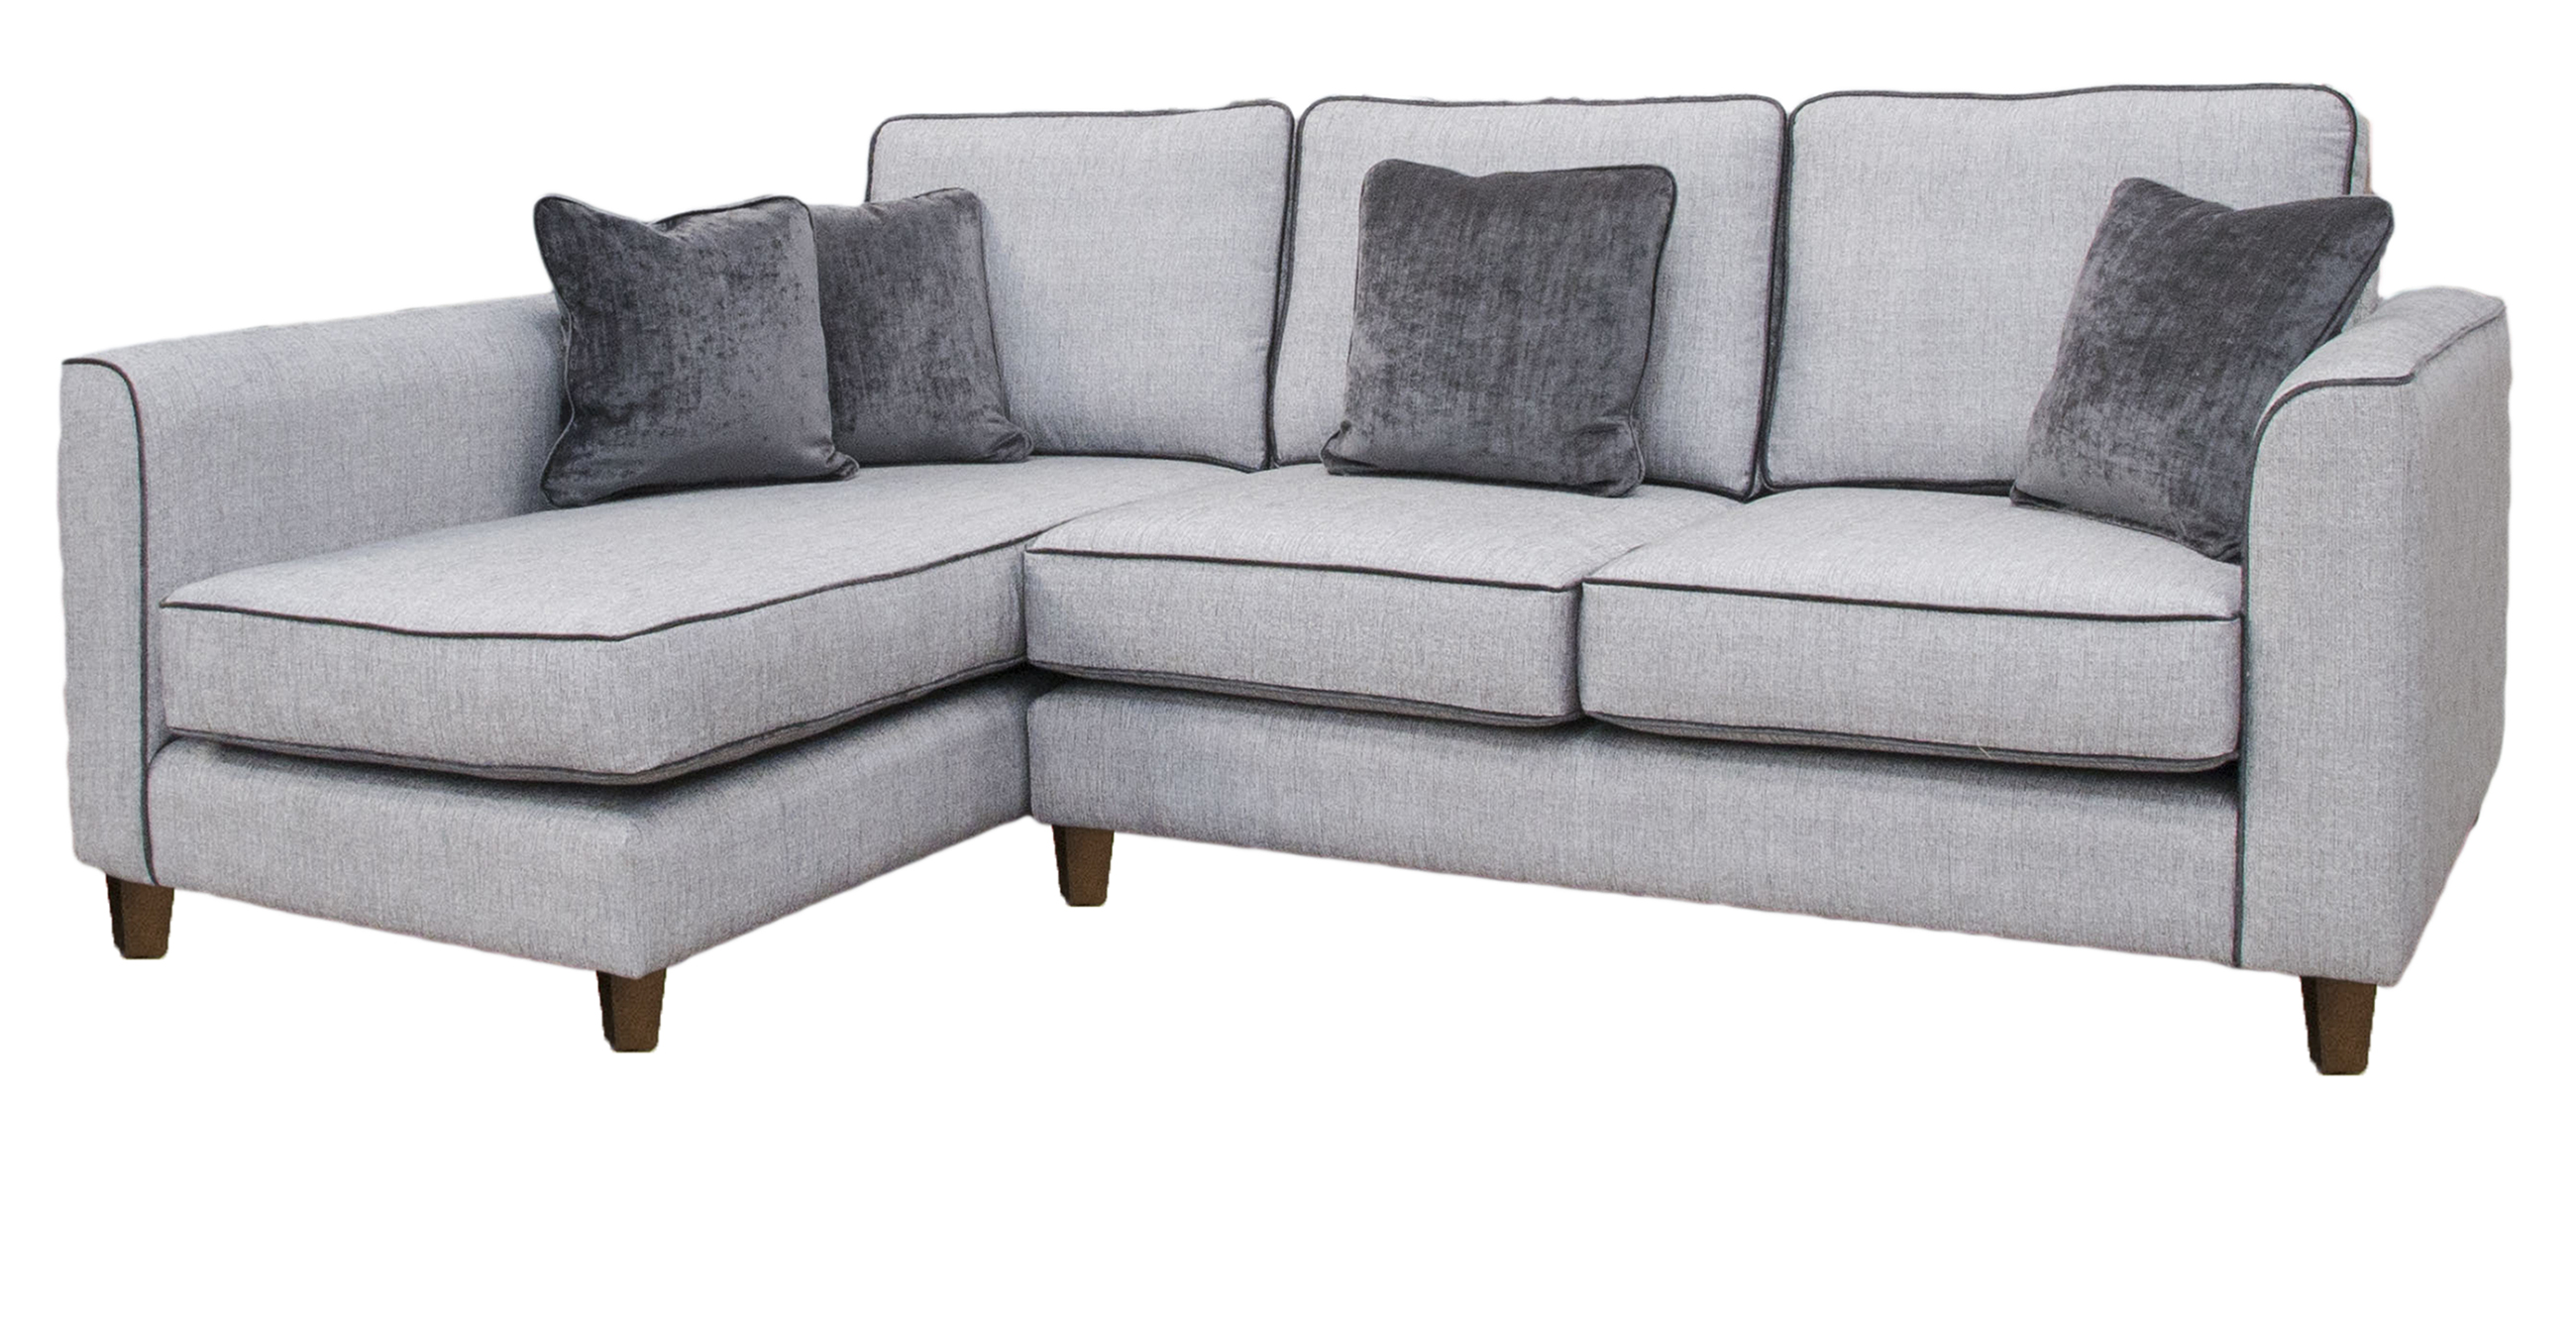 Nolan Sofas And Chairs Range Finline Furniture